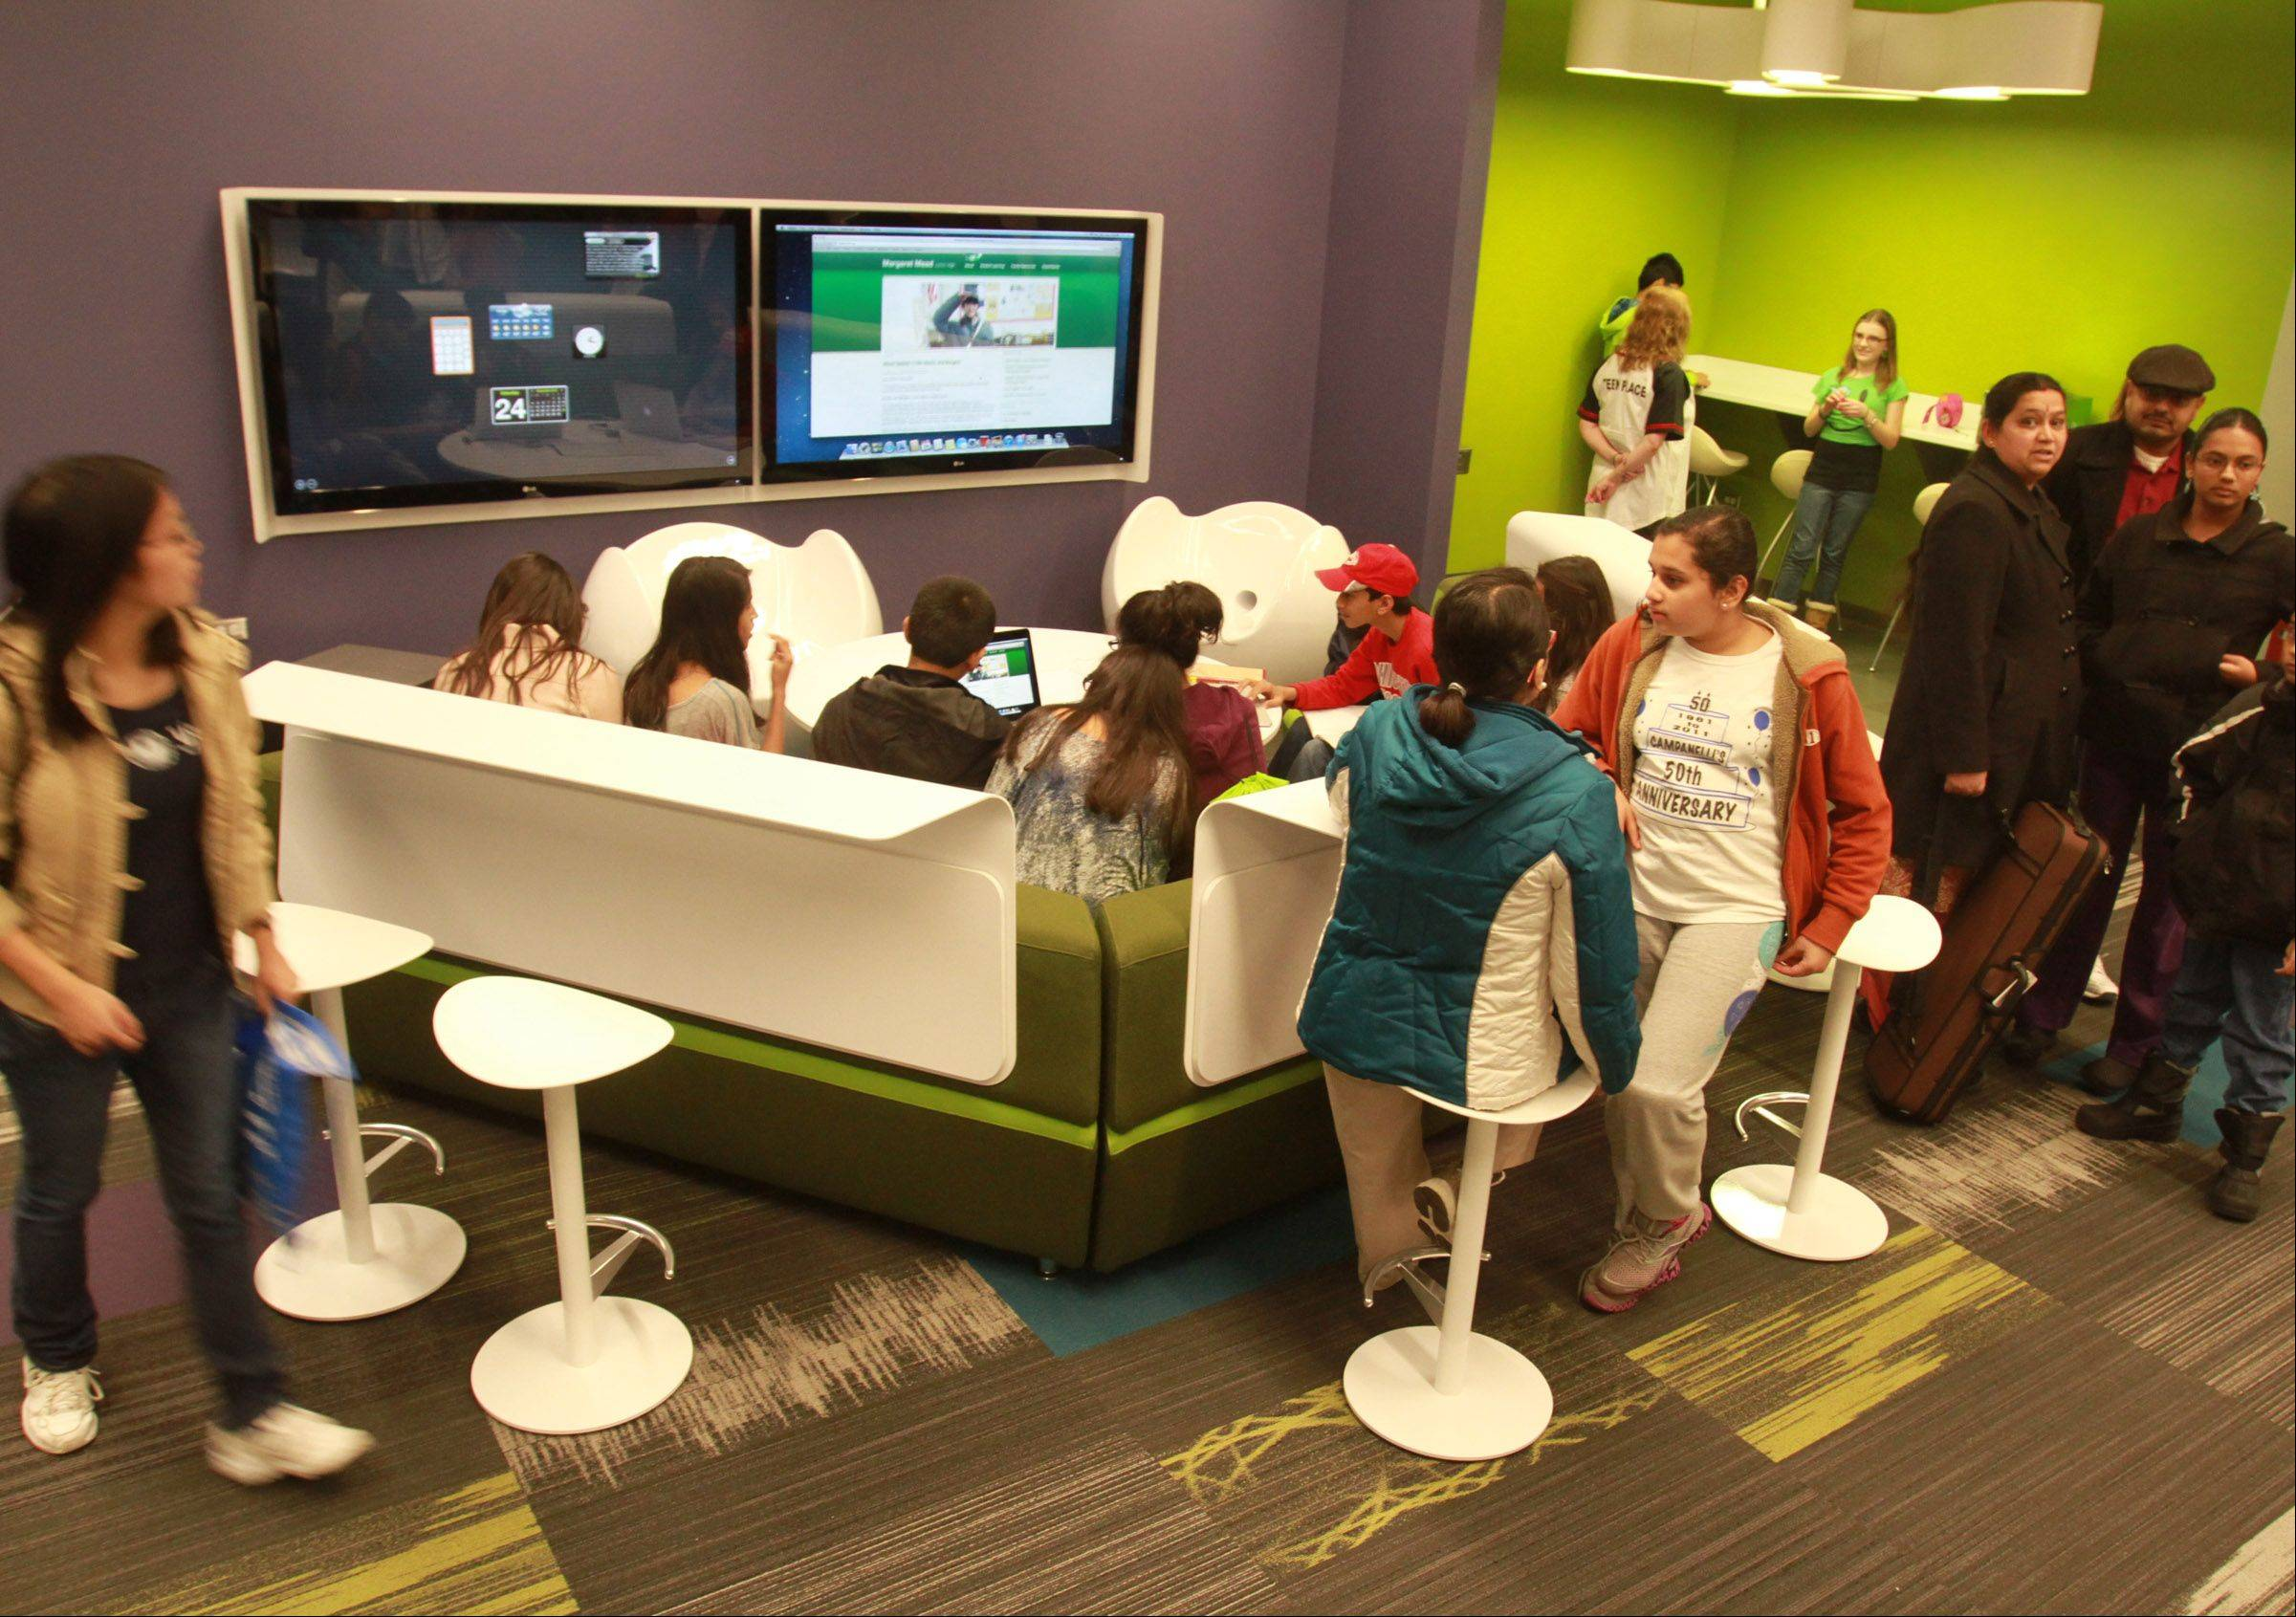 The Schaumburg Township District Library held a ribbon-cutting and grand opening for the Teen Place at the library in Schaumburg on Saturday. Teen Place is a state-of-the-art, 6,000-square-foot multipurpose area full of new technology that community teens can use for school, skill building, group projects and creative fun.